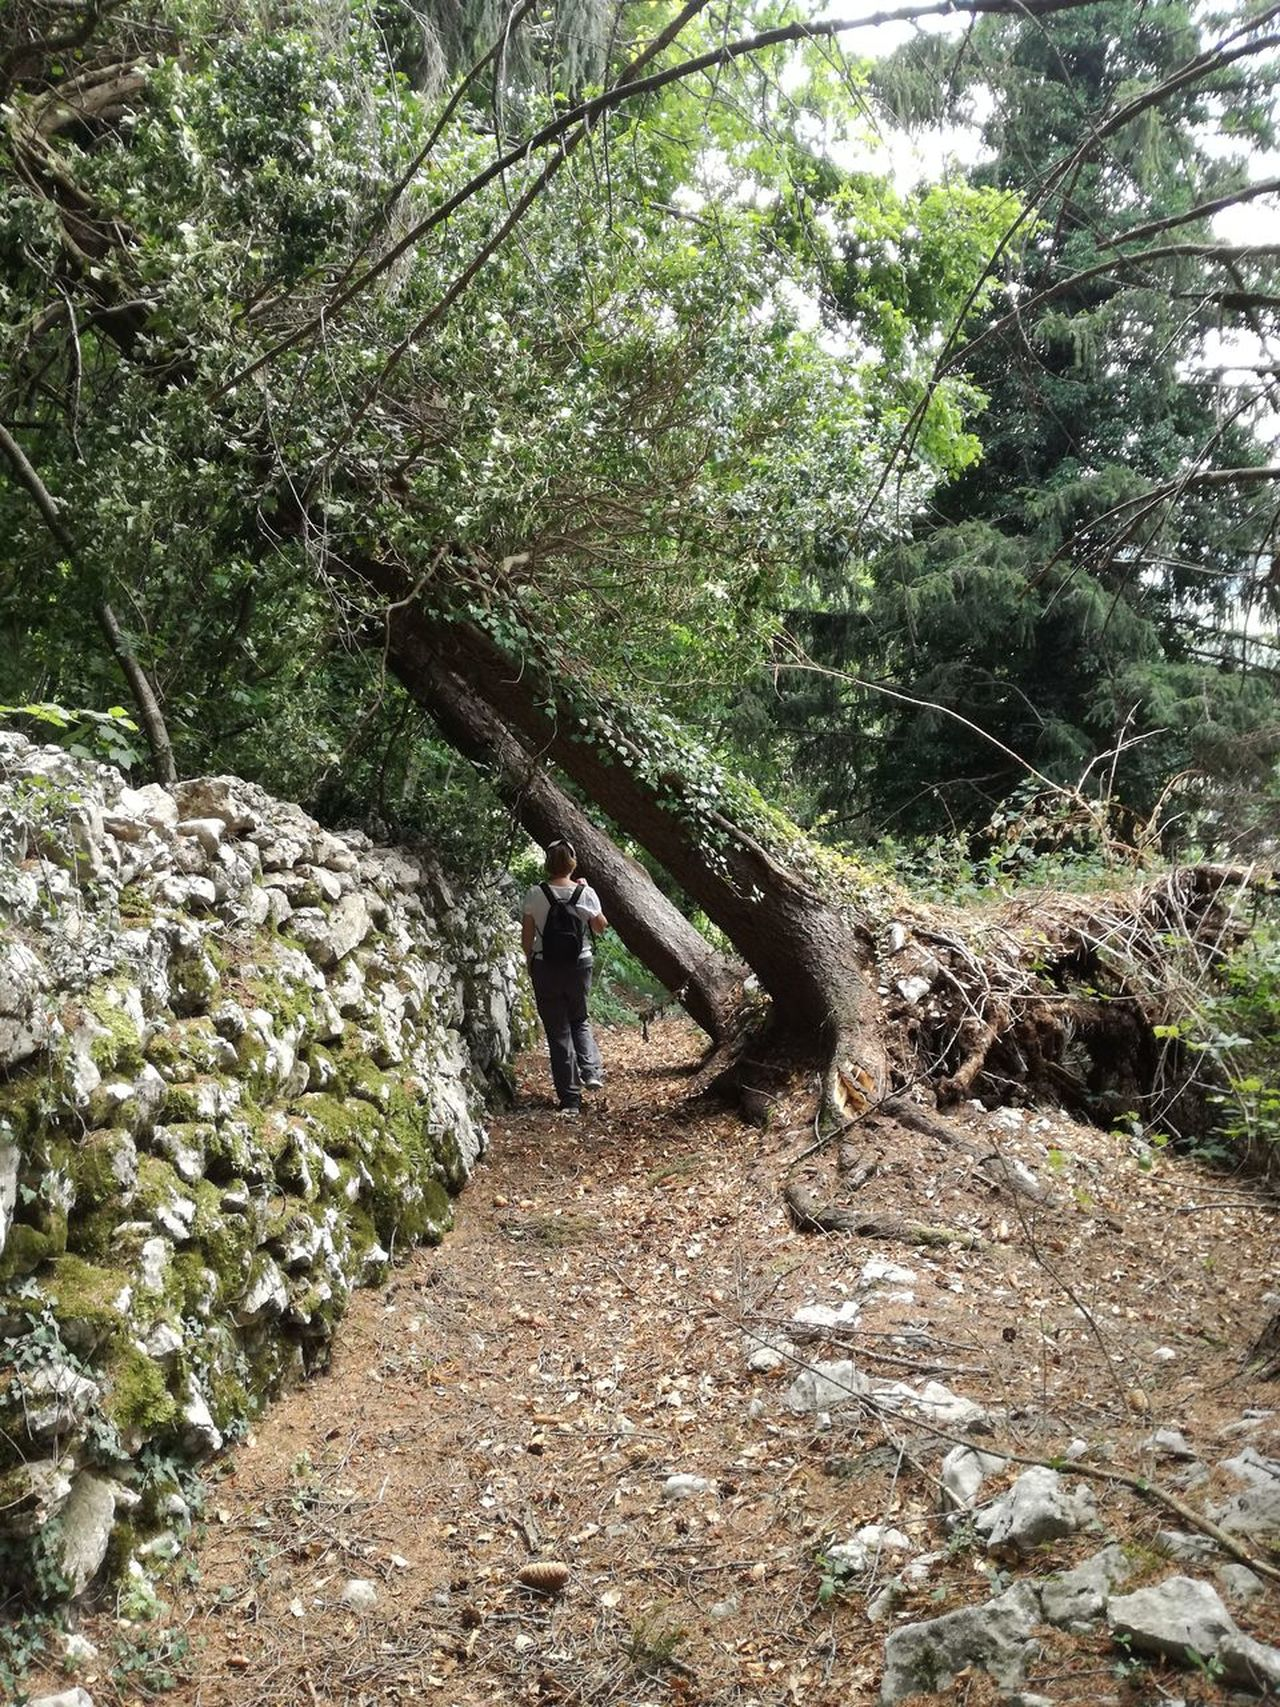 Fallen Tree Nature Tree Outdoors Hiking Trail Lifestyles People Beauty In Nature Landscape Forest Landscape_photography Path In Nature The Way Forward